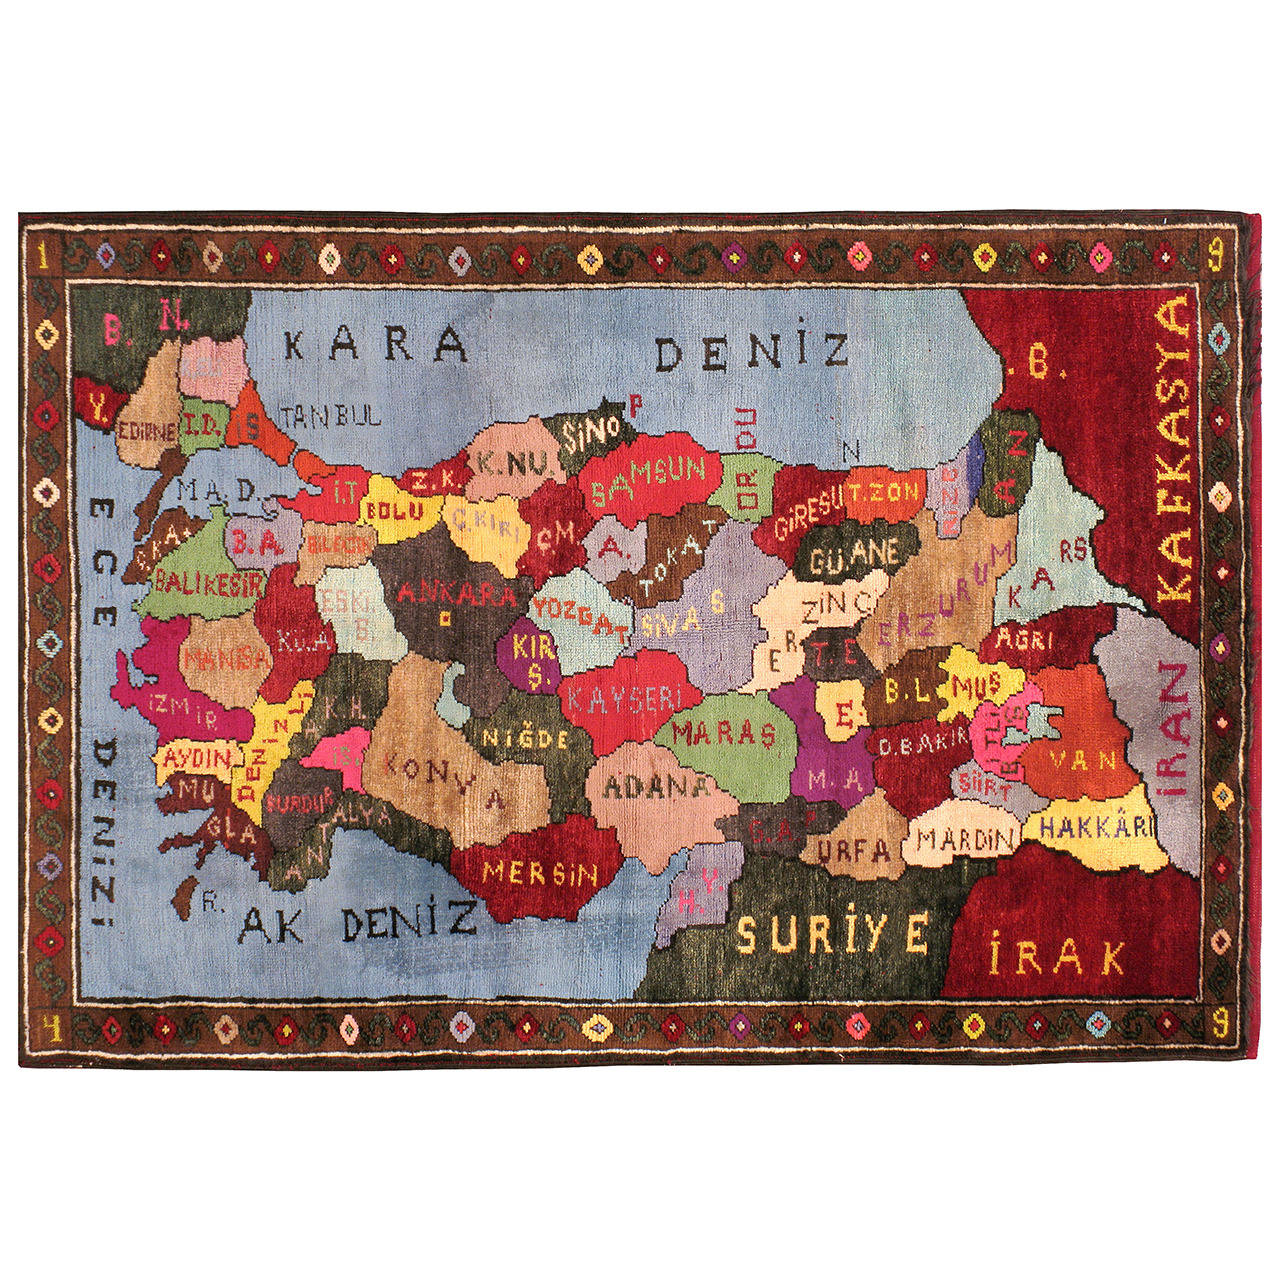 Vintage Turkish Map Rug 1 - Vintage Turkish Map Rug For Sale At 1stdibs